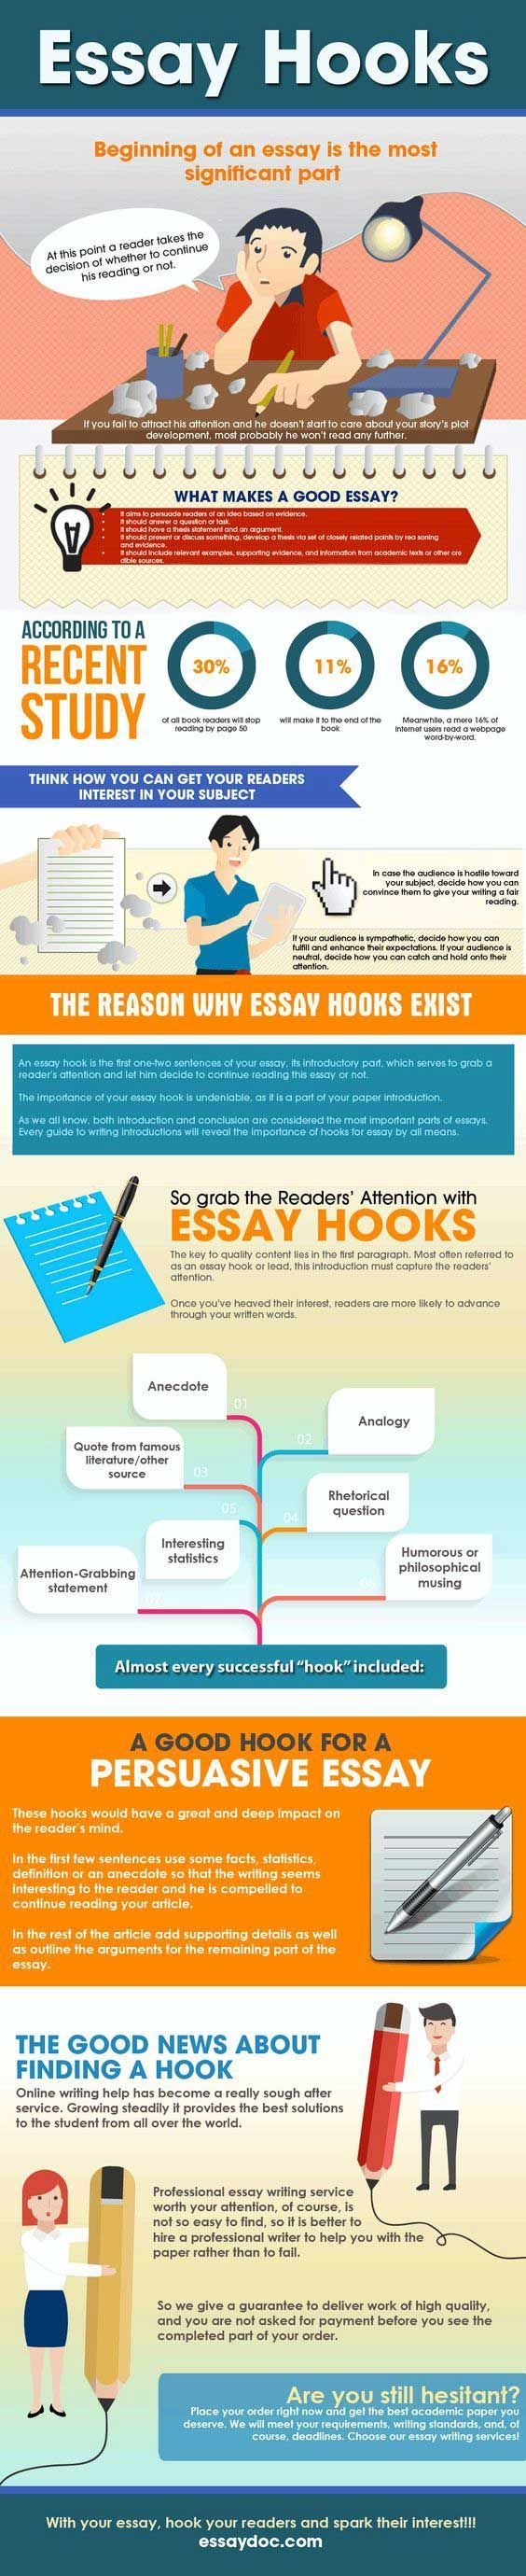 Is it legal to cite essays that have been used in my research?